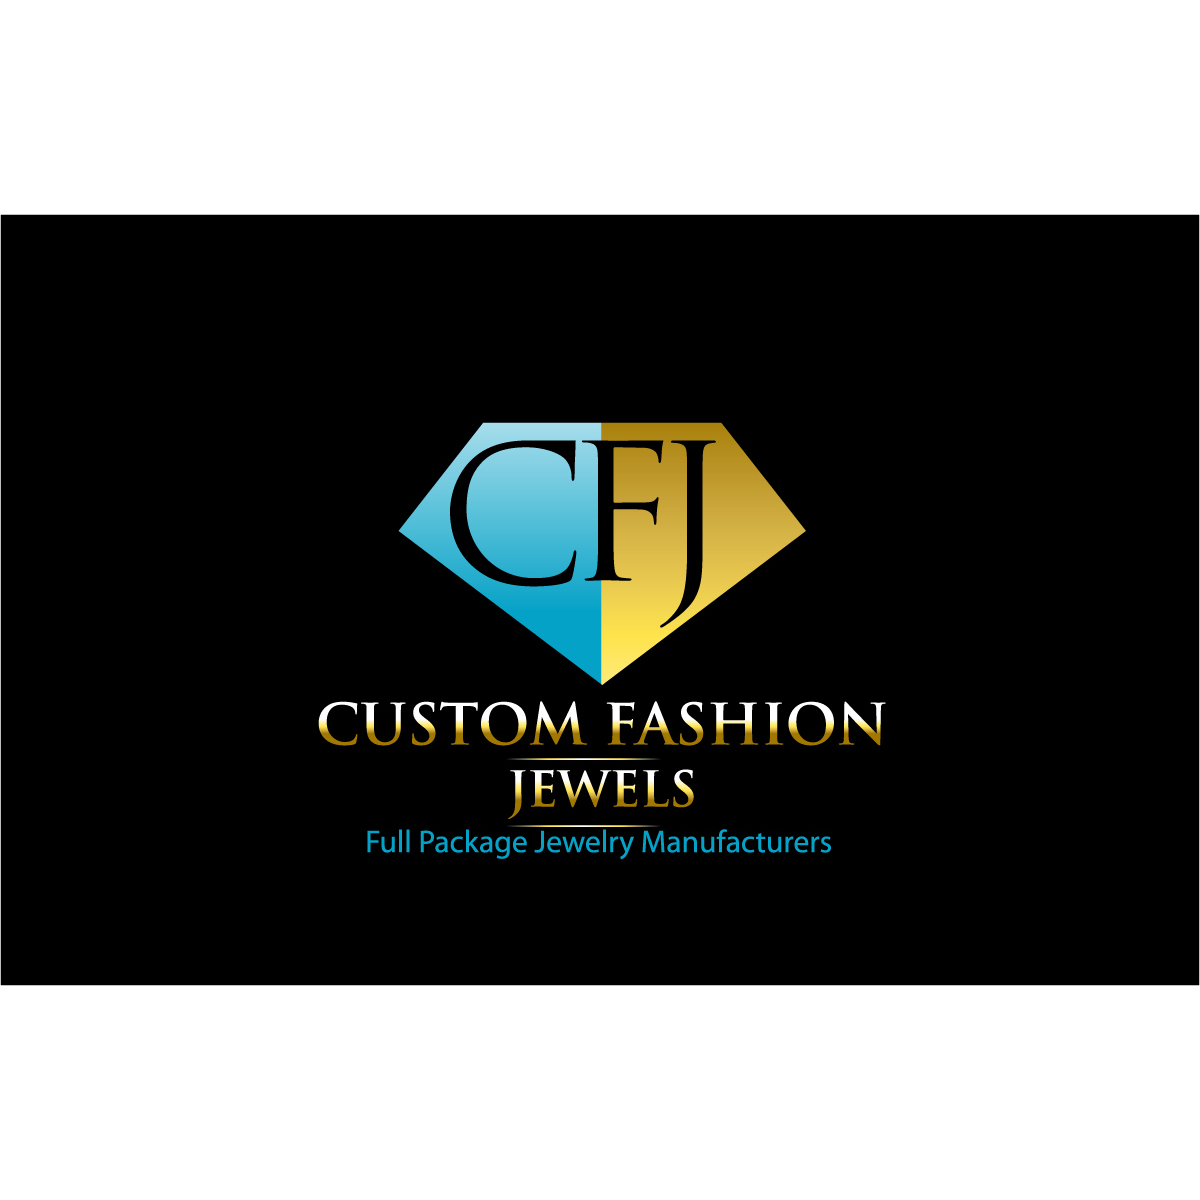 Custom fashion jewels los angeles ca business directory for California company directory